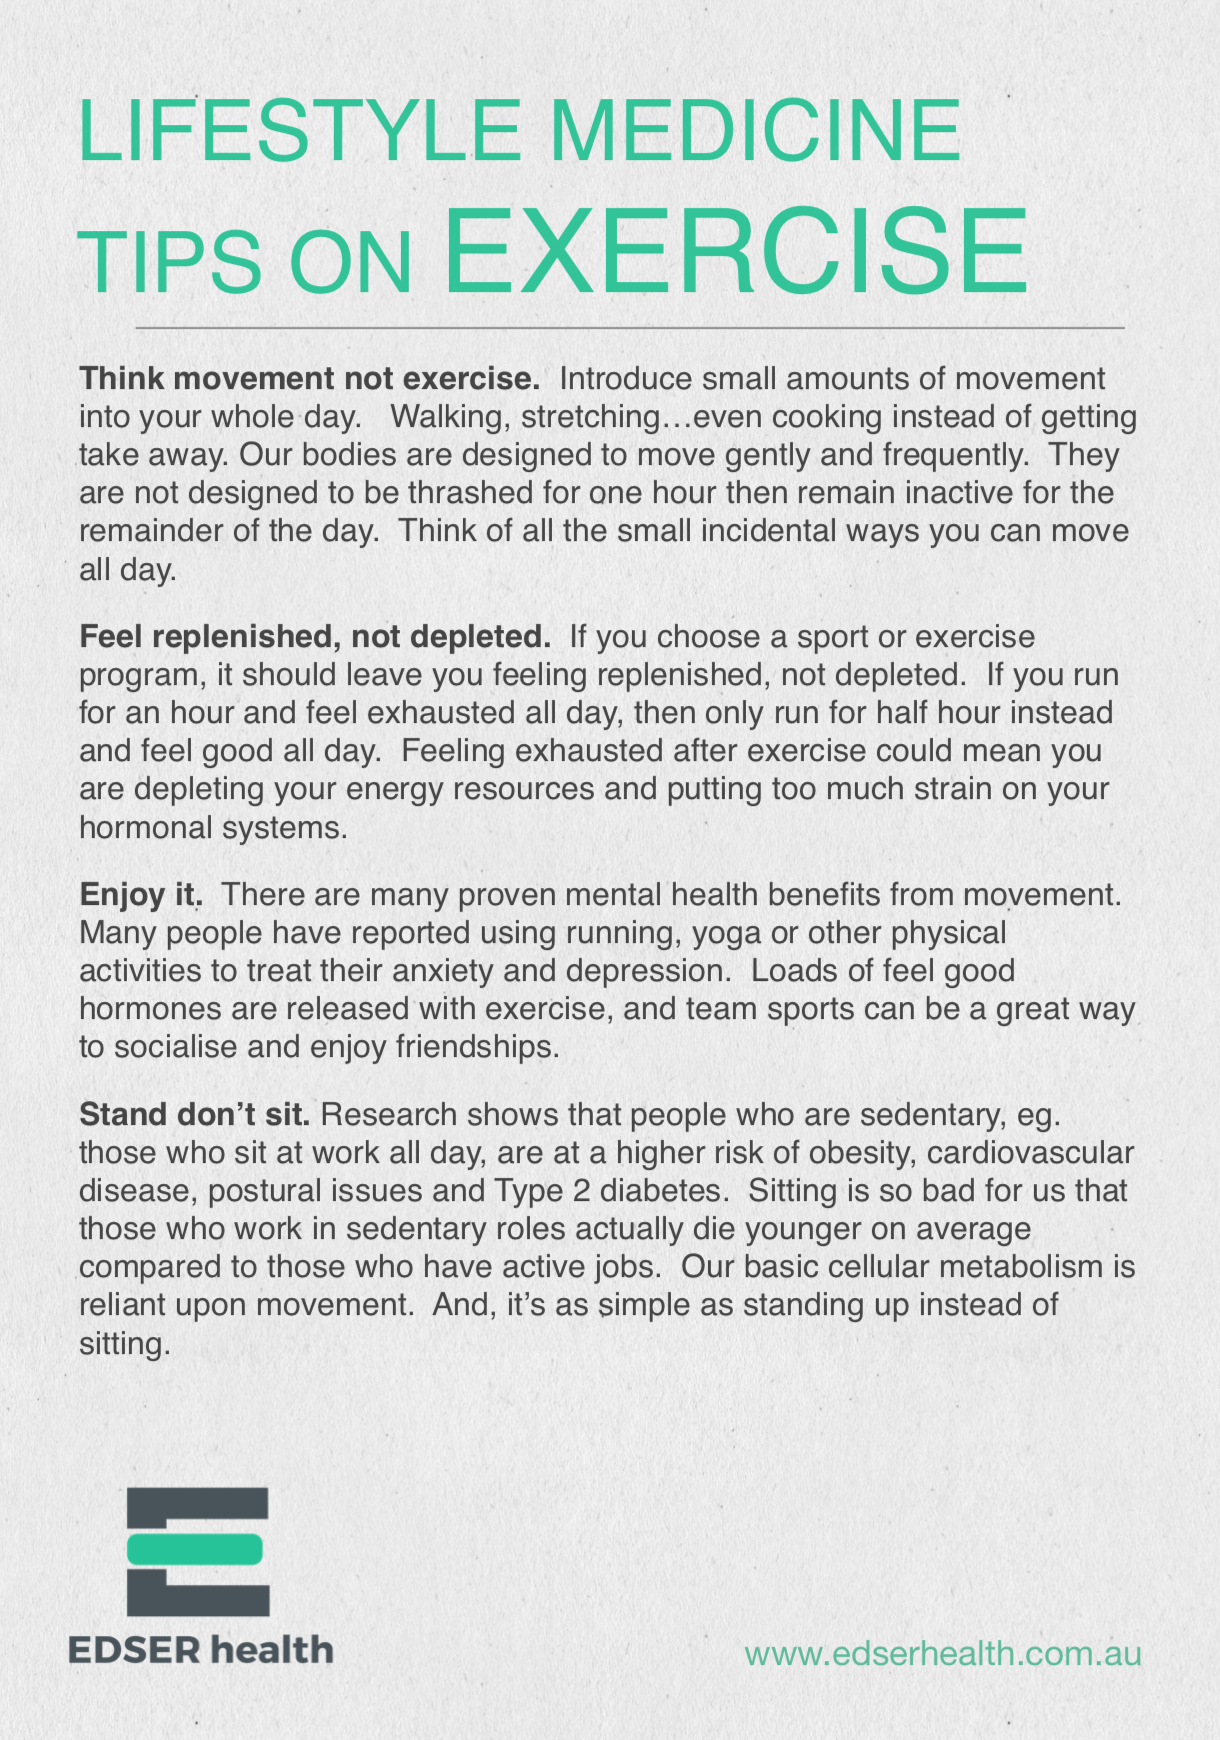 lifestyle-medicine-exercise.png